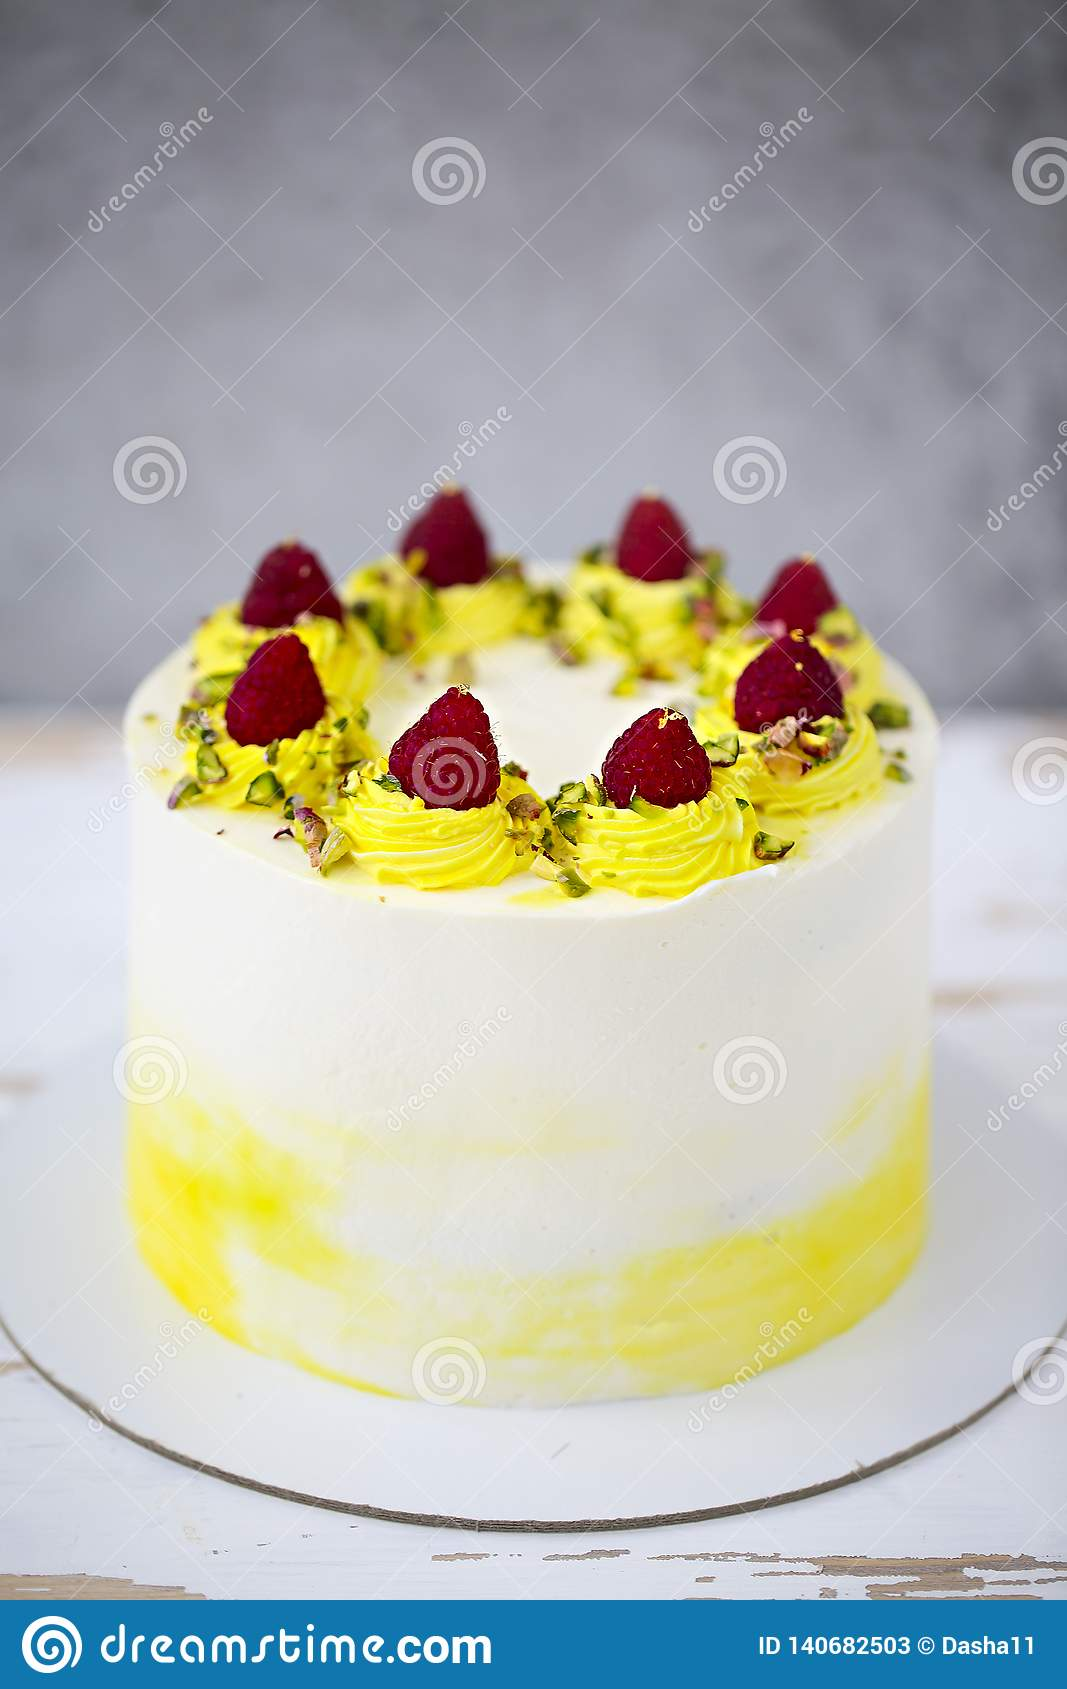 Happy birthday cake with mascarpone decorated with raspberry, pistachio on the cake stand